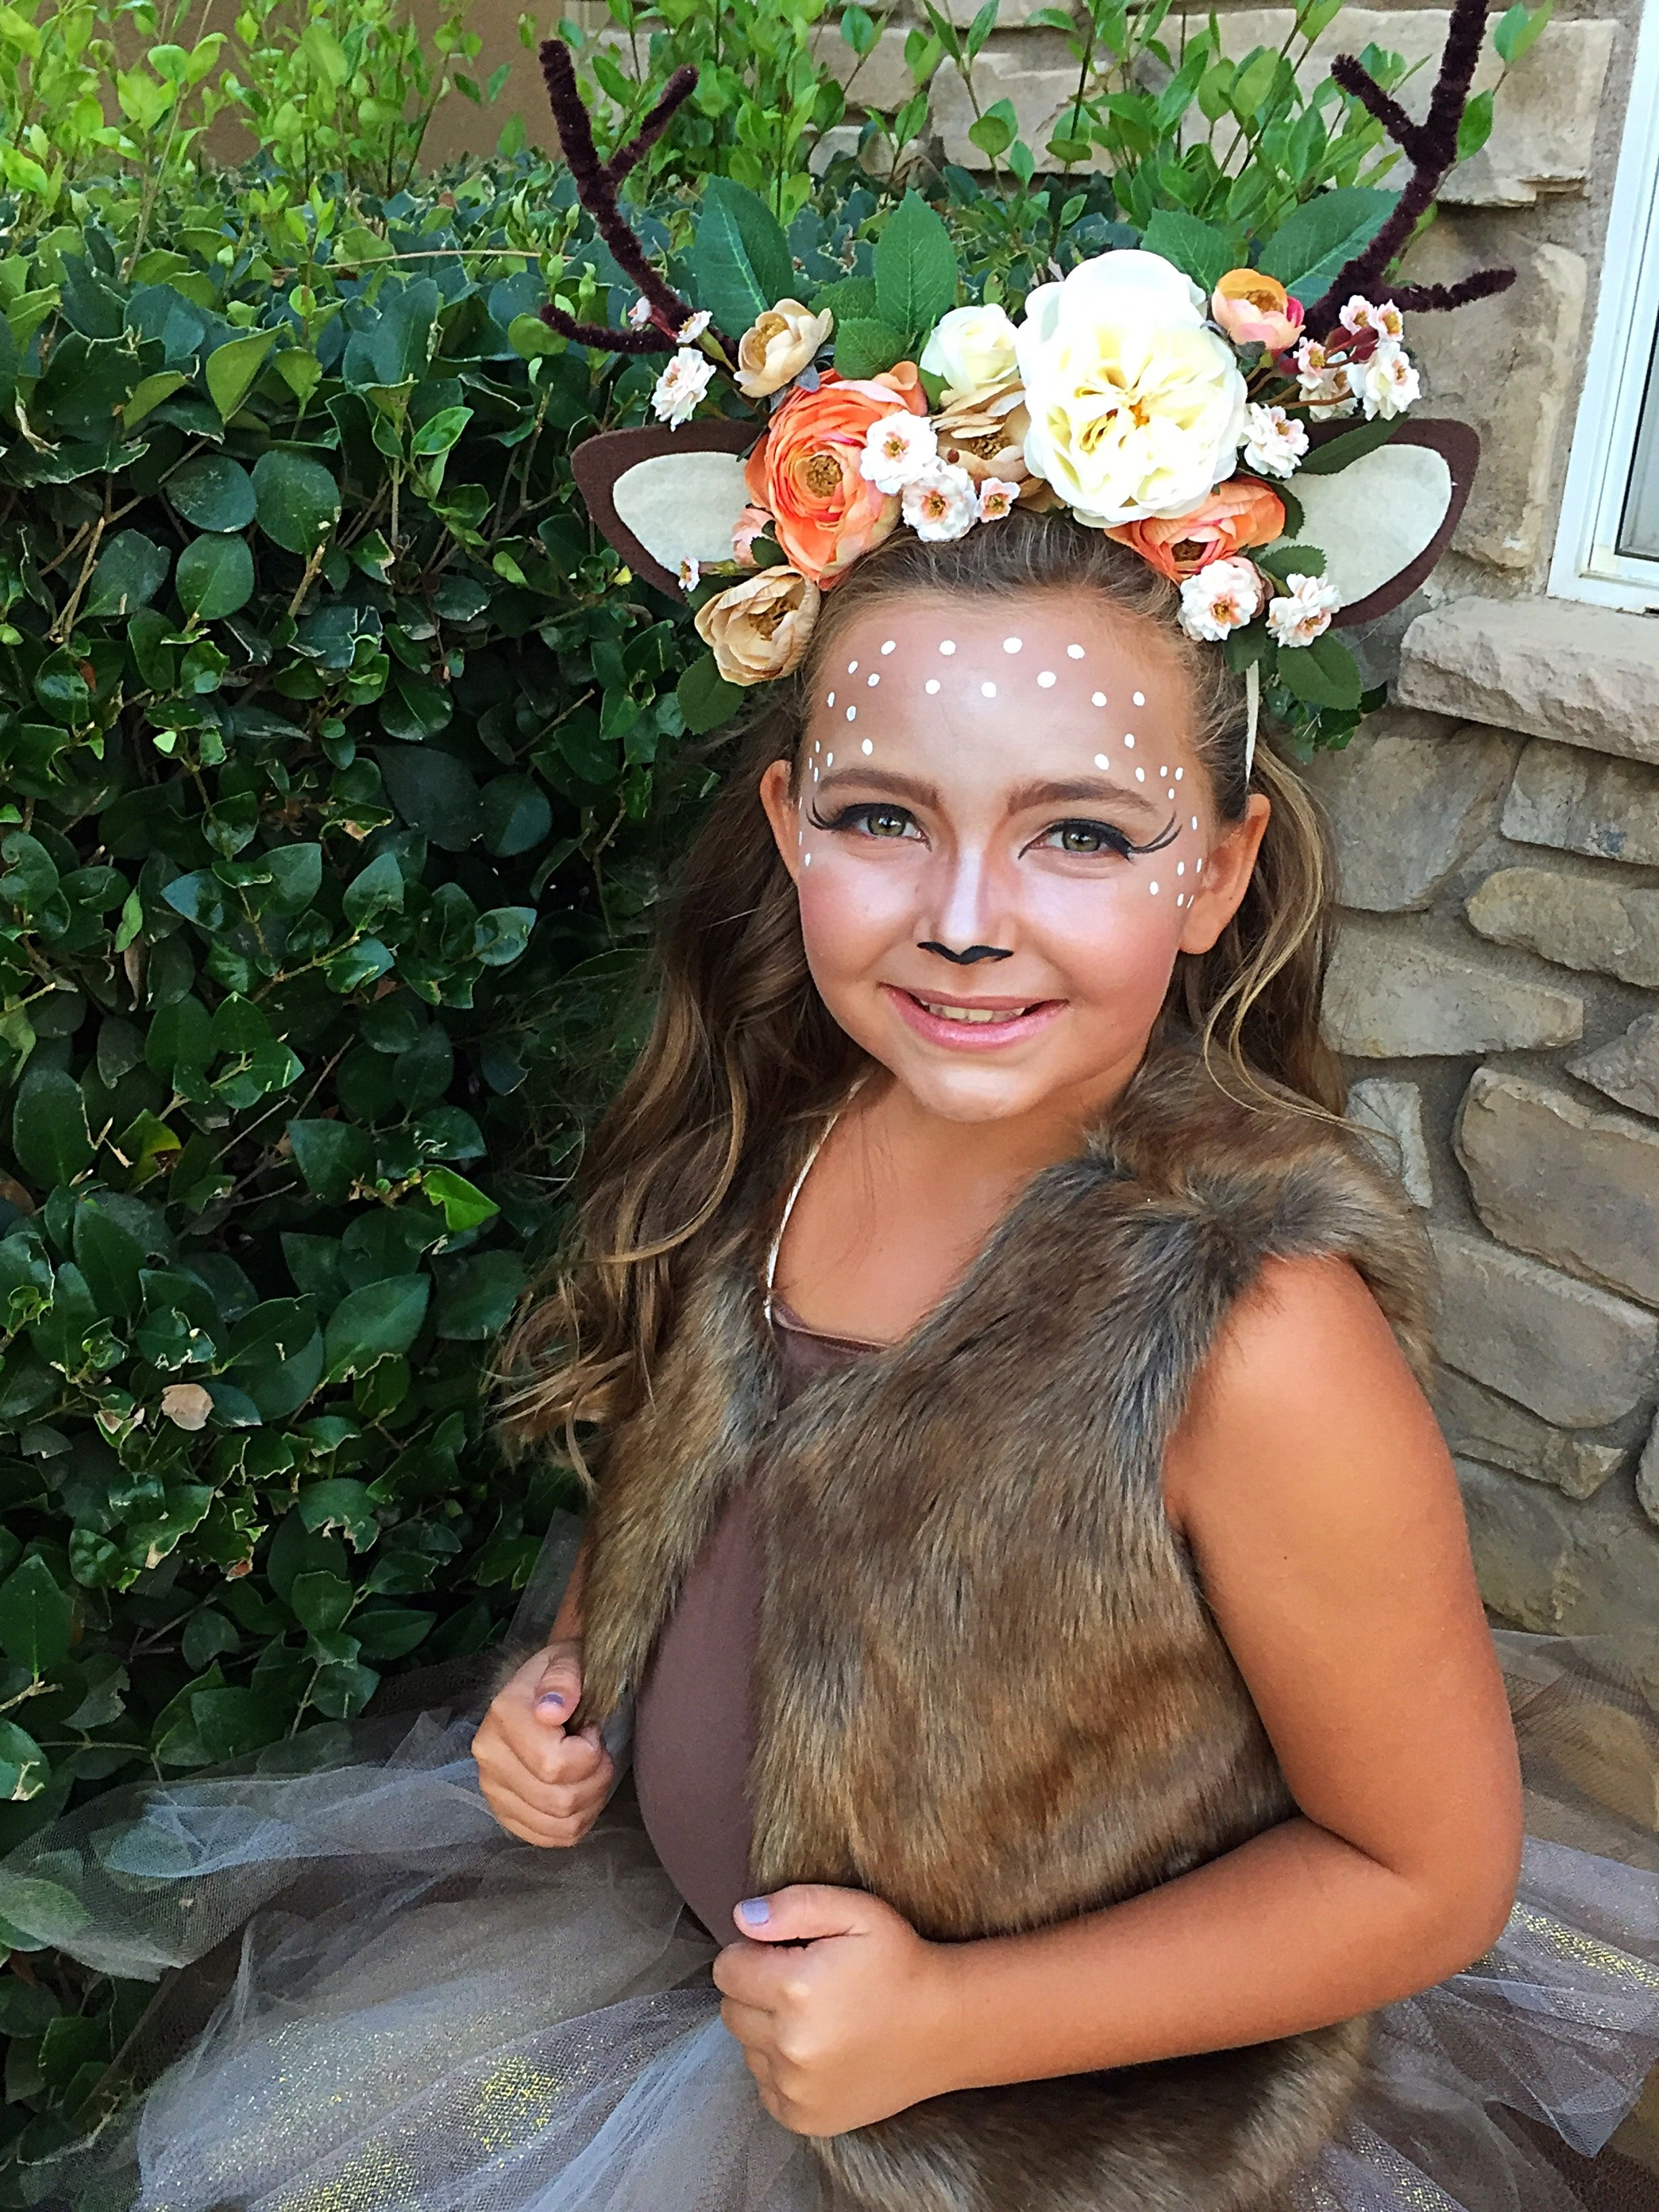 Pocahontas Kostüm Selber Machen Girls Dyi Deer Costume Headband Tutu Makeup